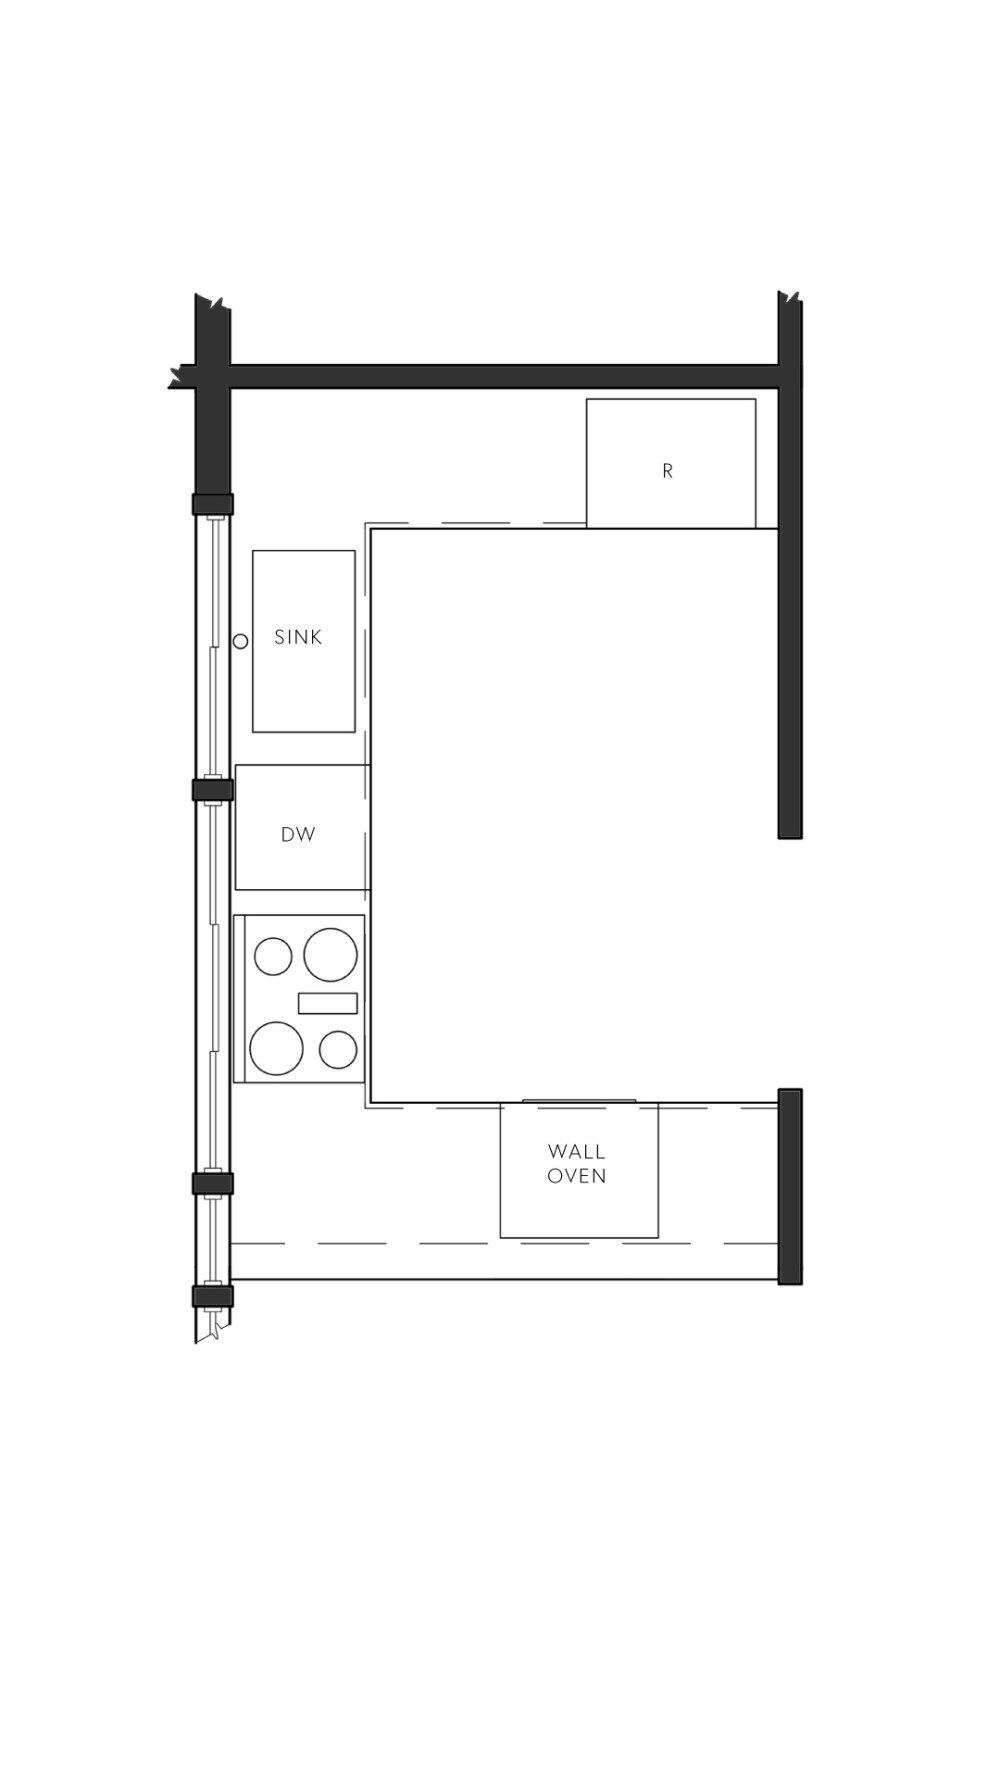 designing and planning our future modern kitchen - part i — the